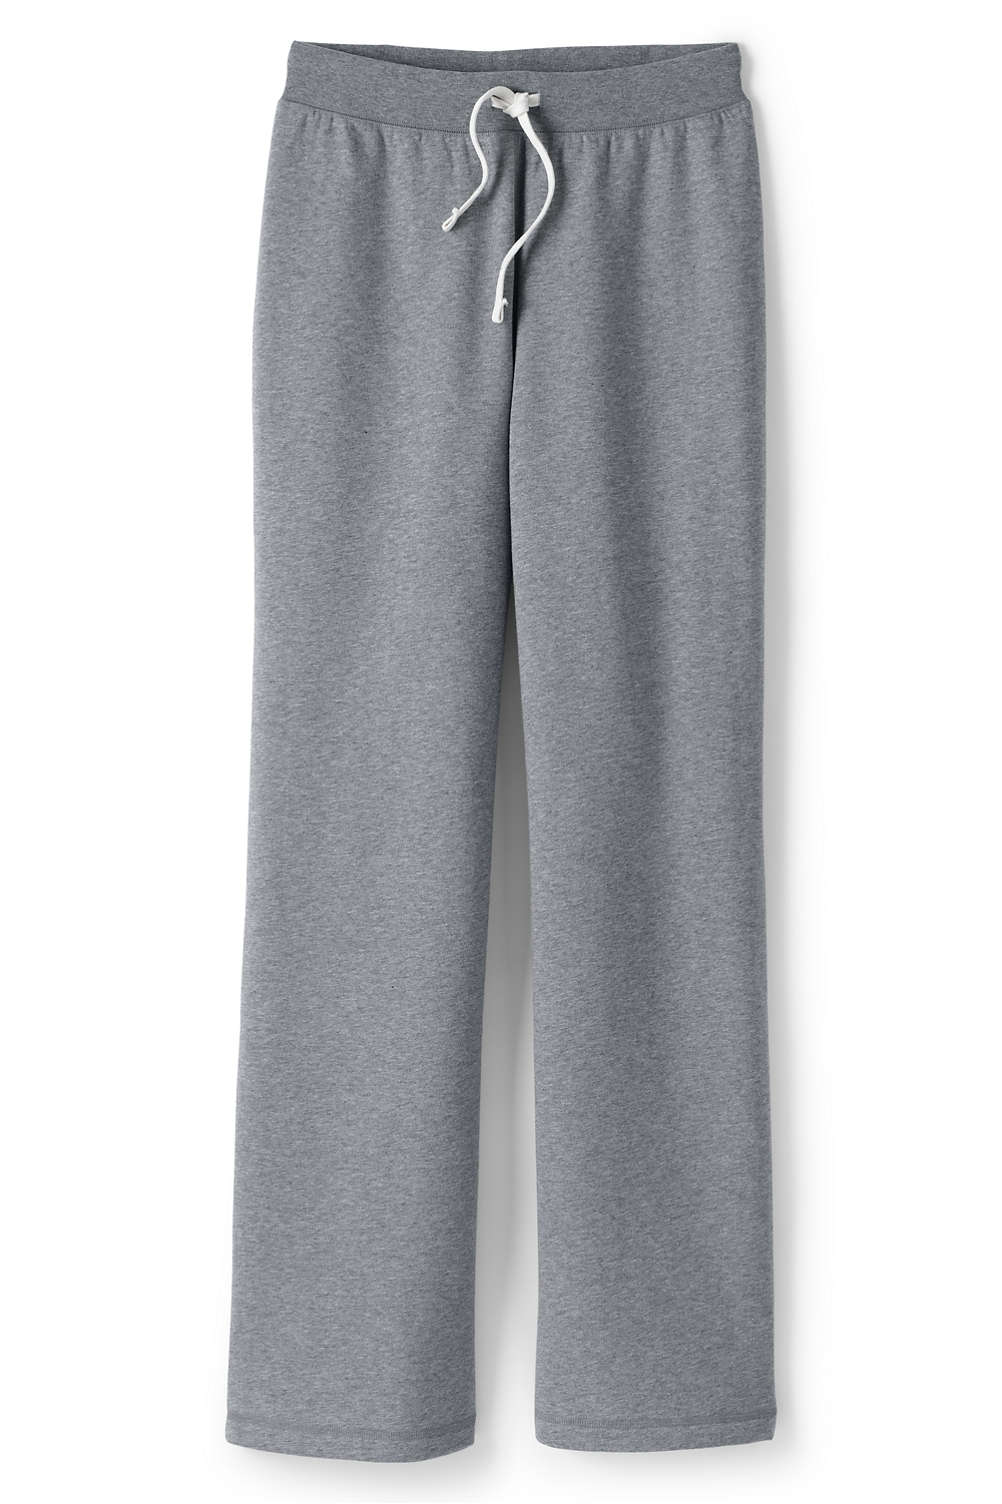 ca69c65d1a65fe Women's Sweatpants from Lands' End